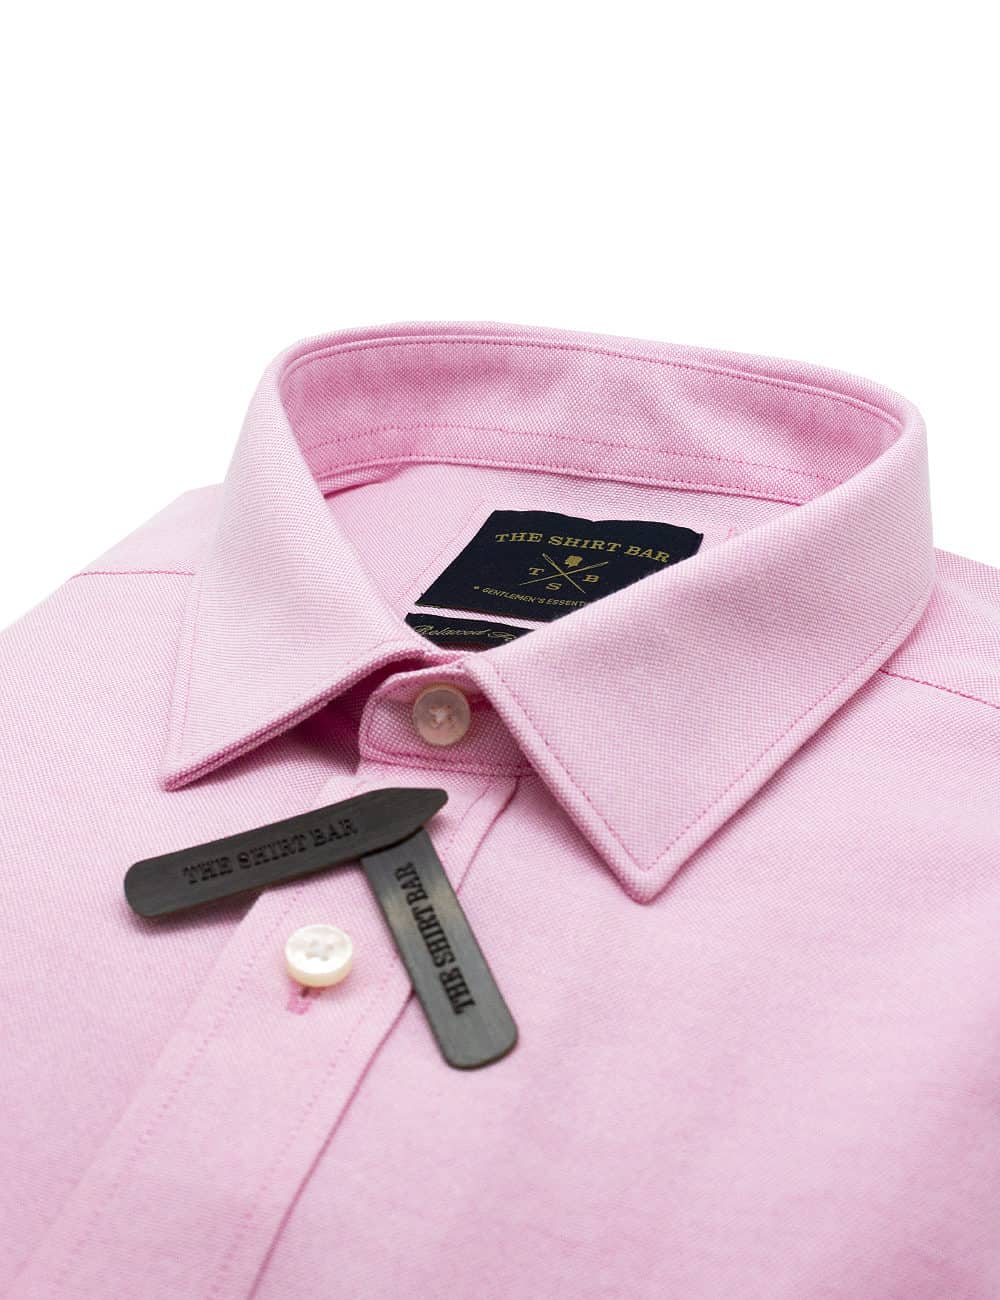 Relaxed Fit Cotton Blend Wrinkle Resistant Solid Pink Oxford Short Sleeve Easy Iron Shirt RF9SNB12.17